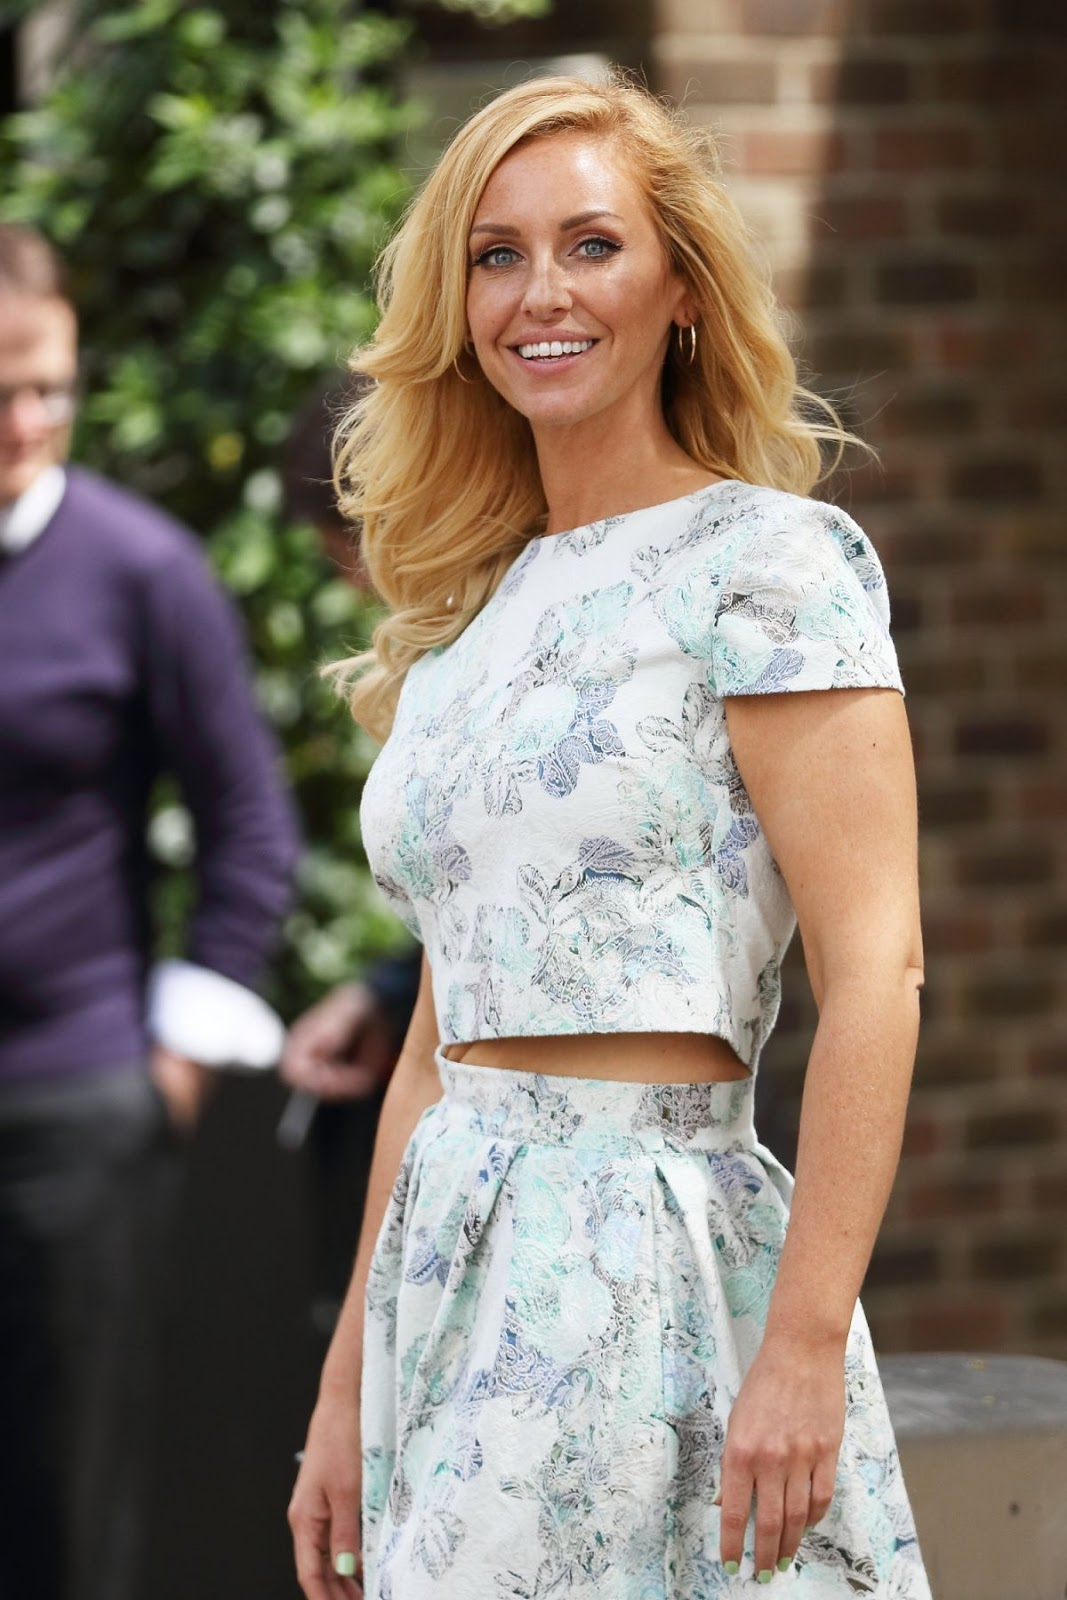 HD Photos of Josie Gibson at London ITV Studios